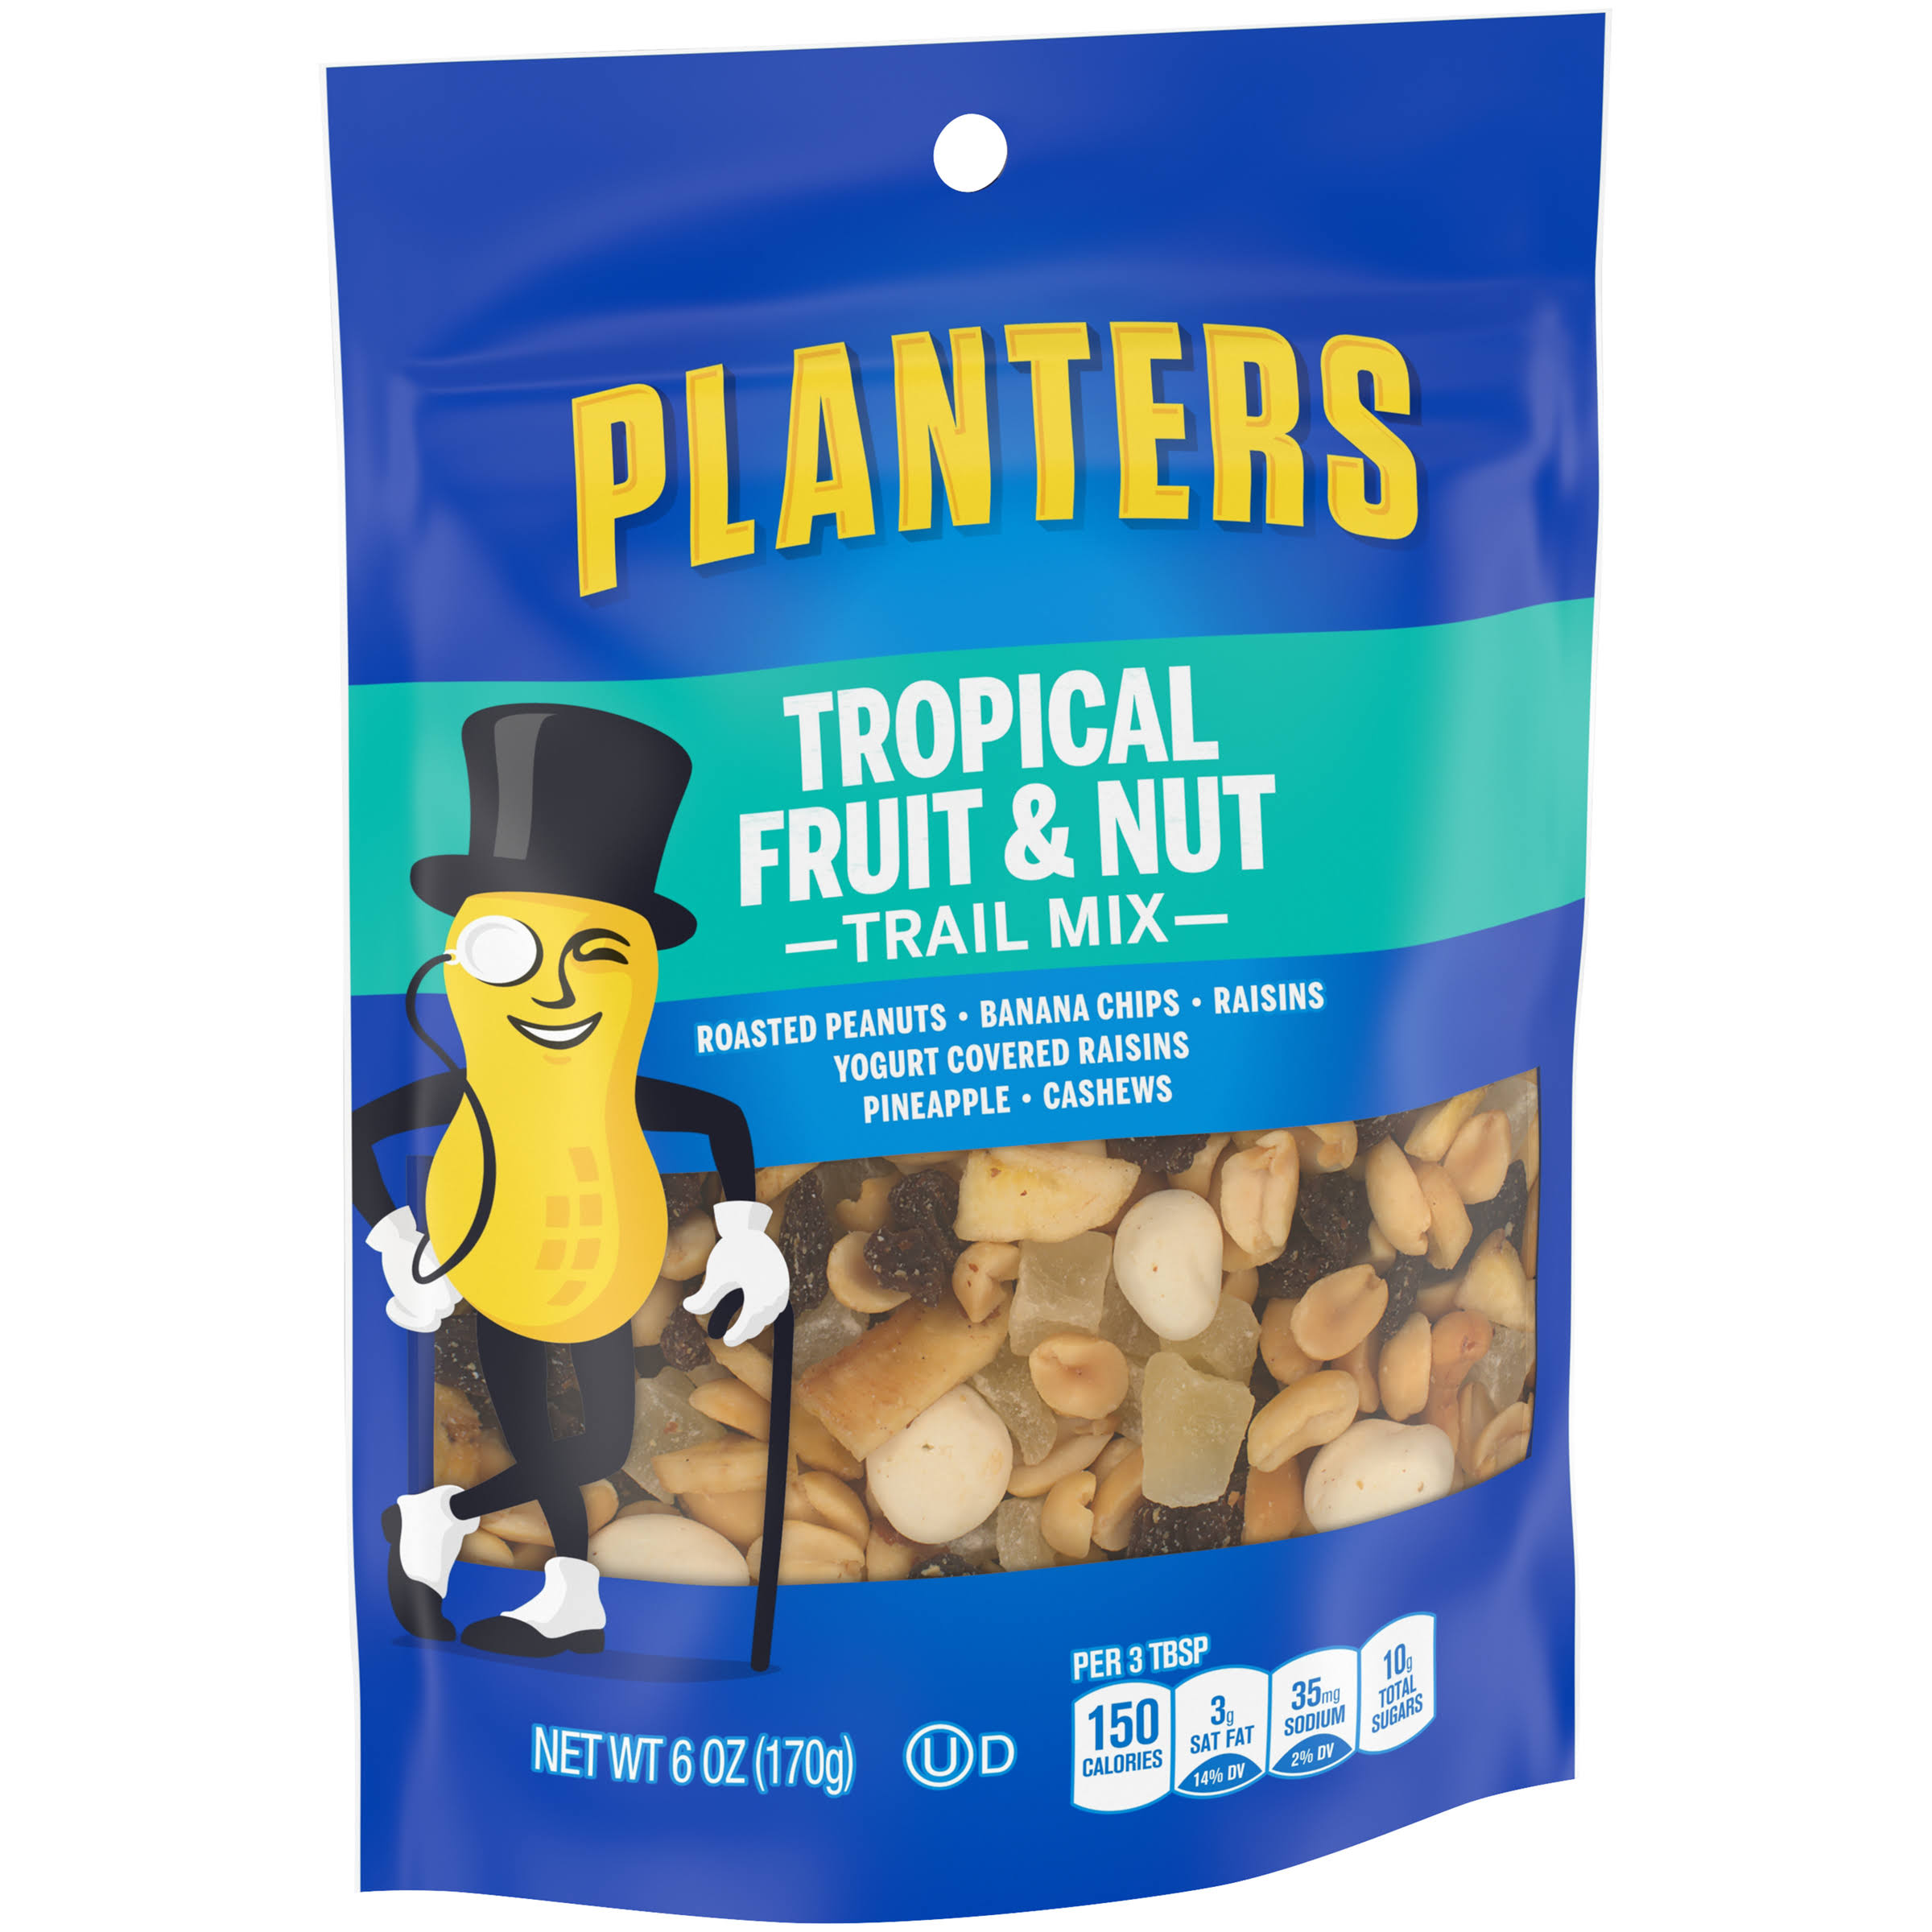 Planters Tropical Fruit & Nut Trail Mix